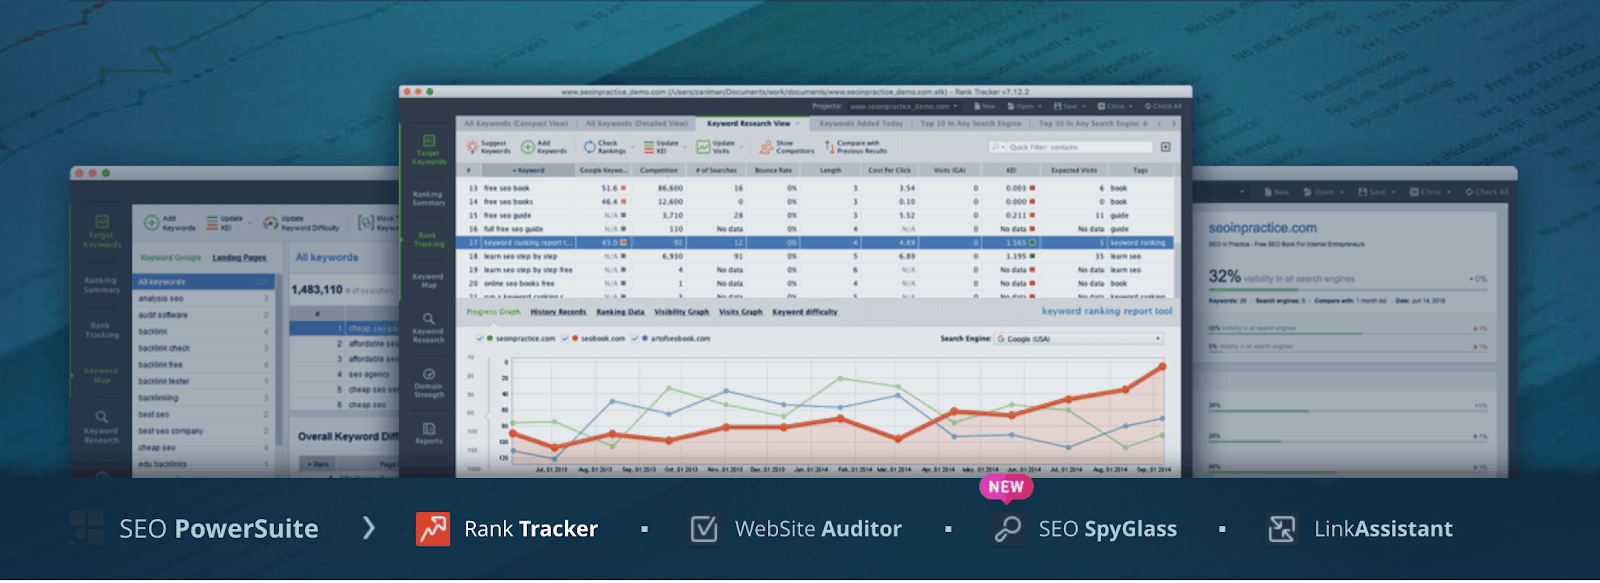 SEO Powersuite Dashboard Mockup - SEMrush Competitors Alternatives